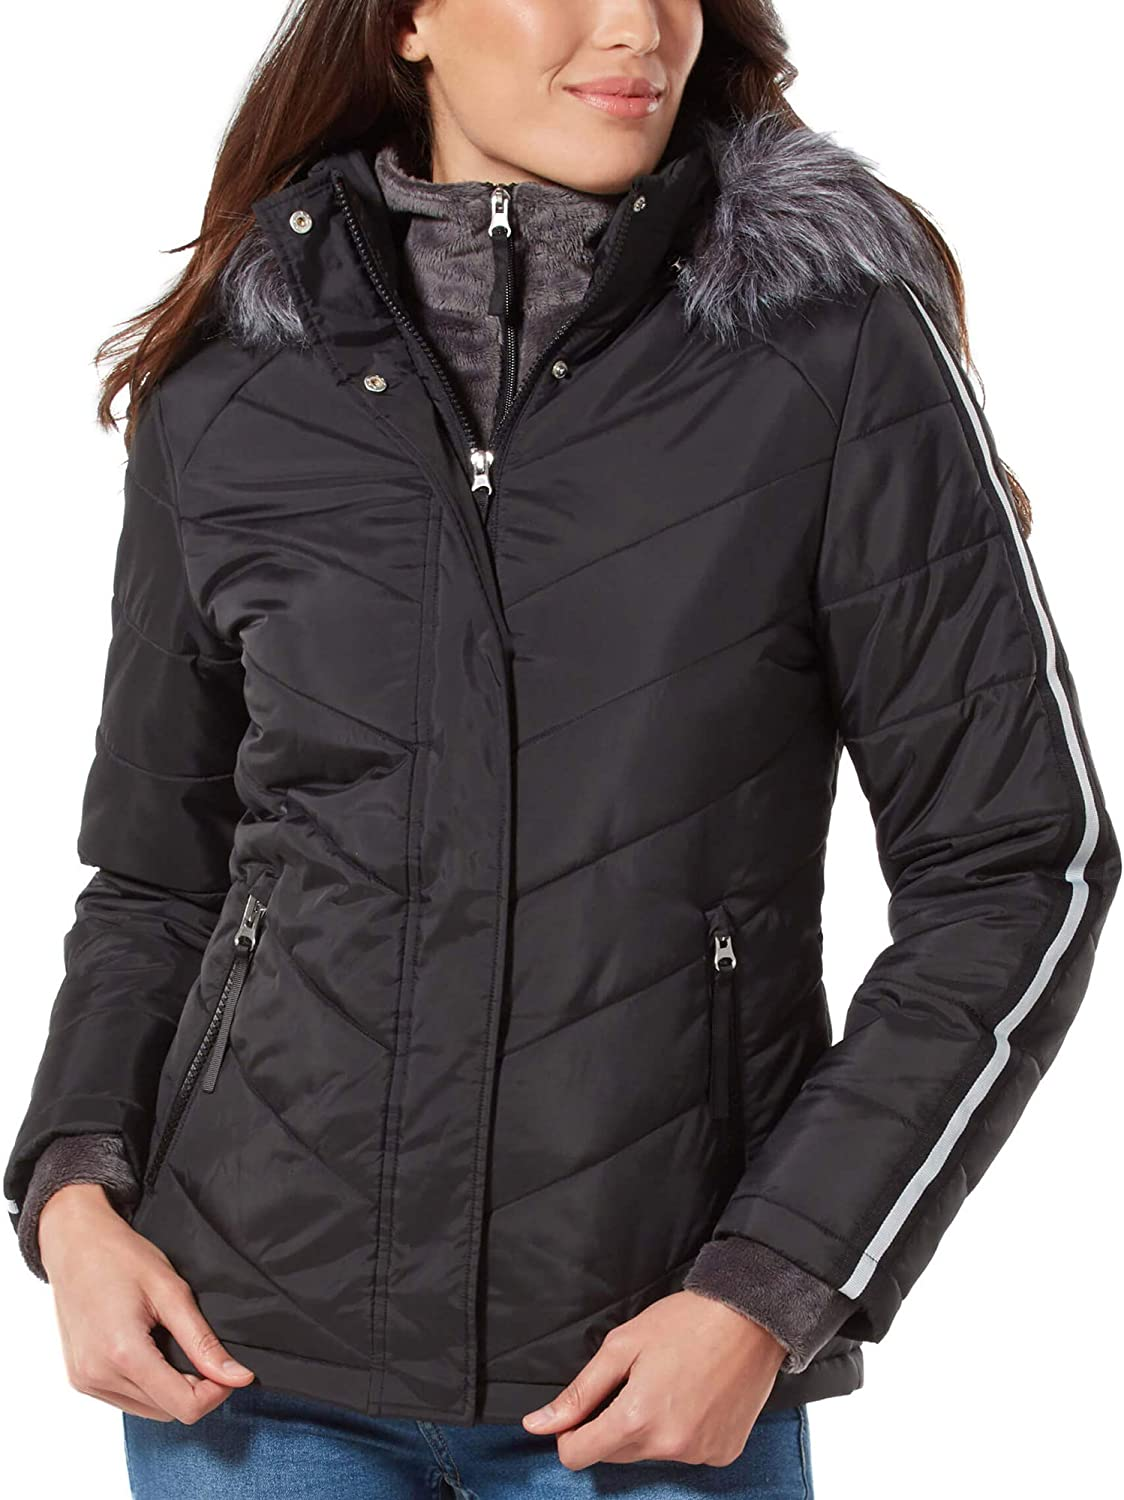 Free Country Women's Exhilarate Jacket